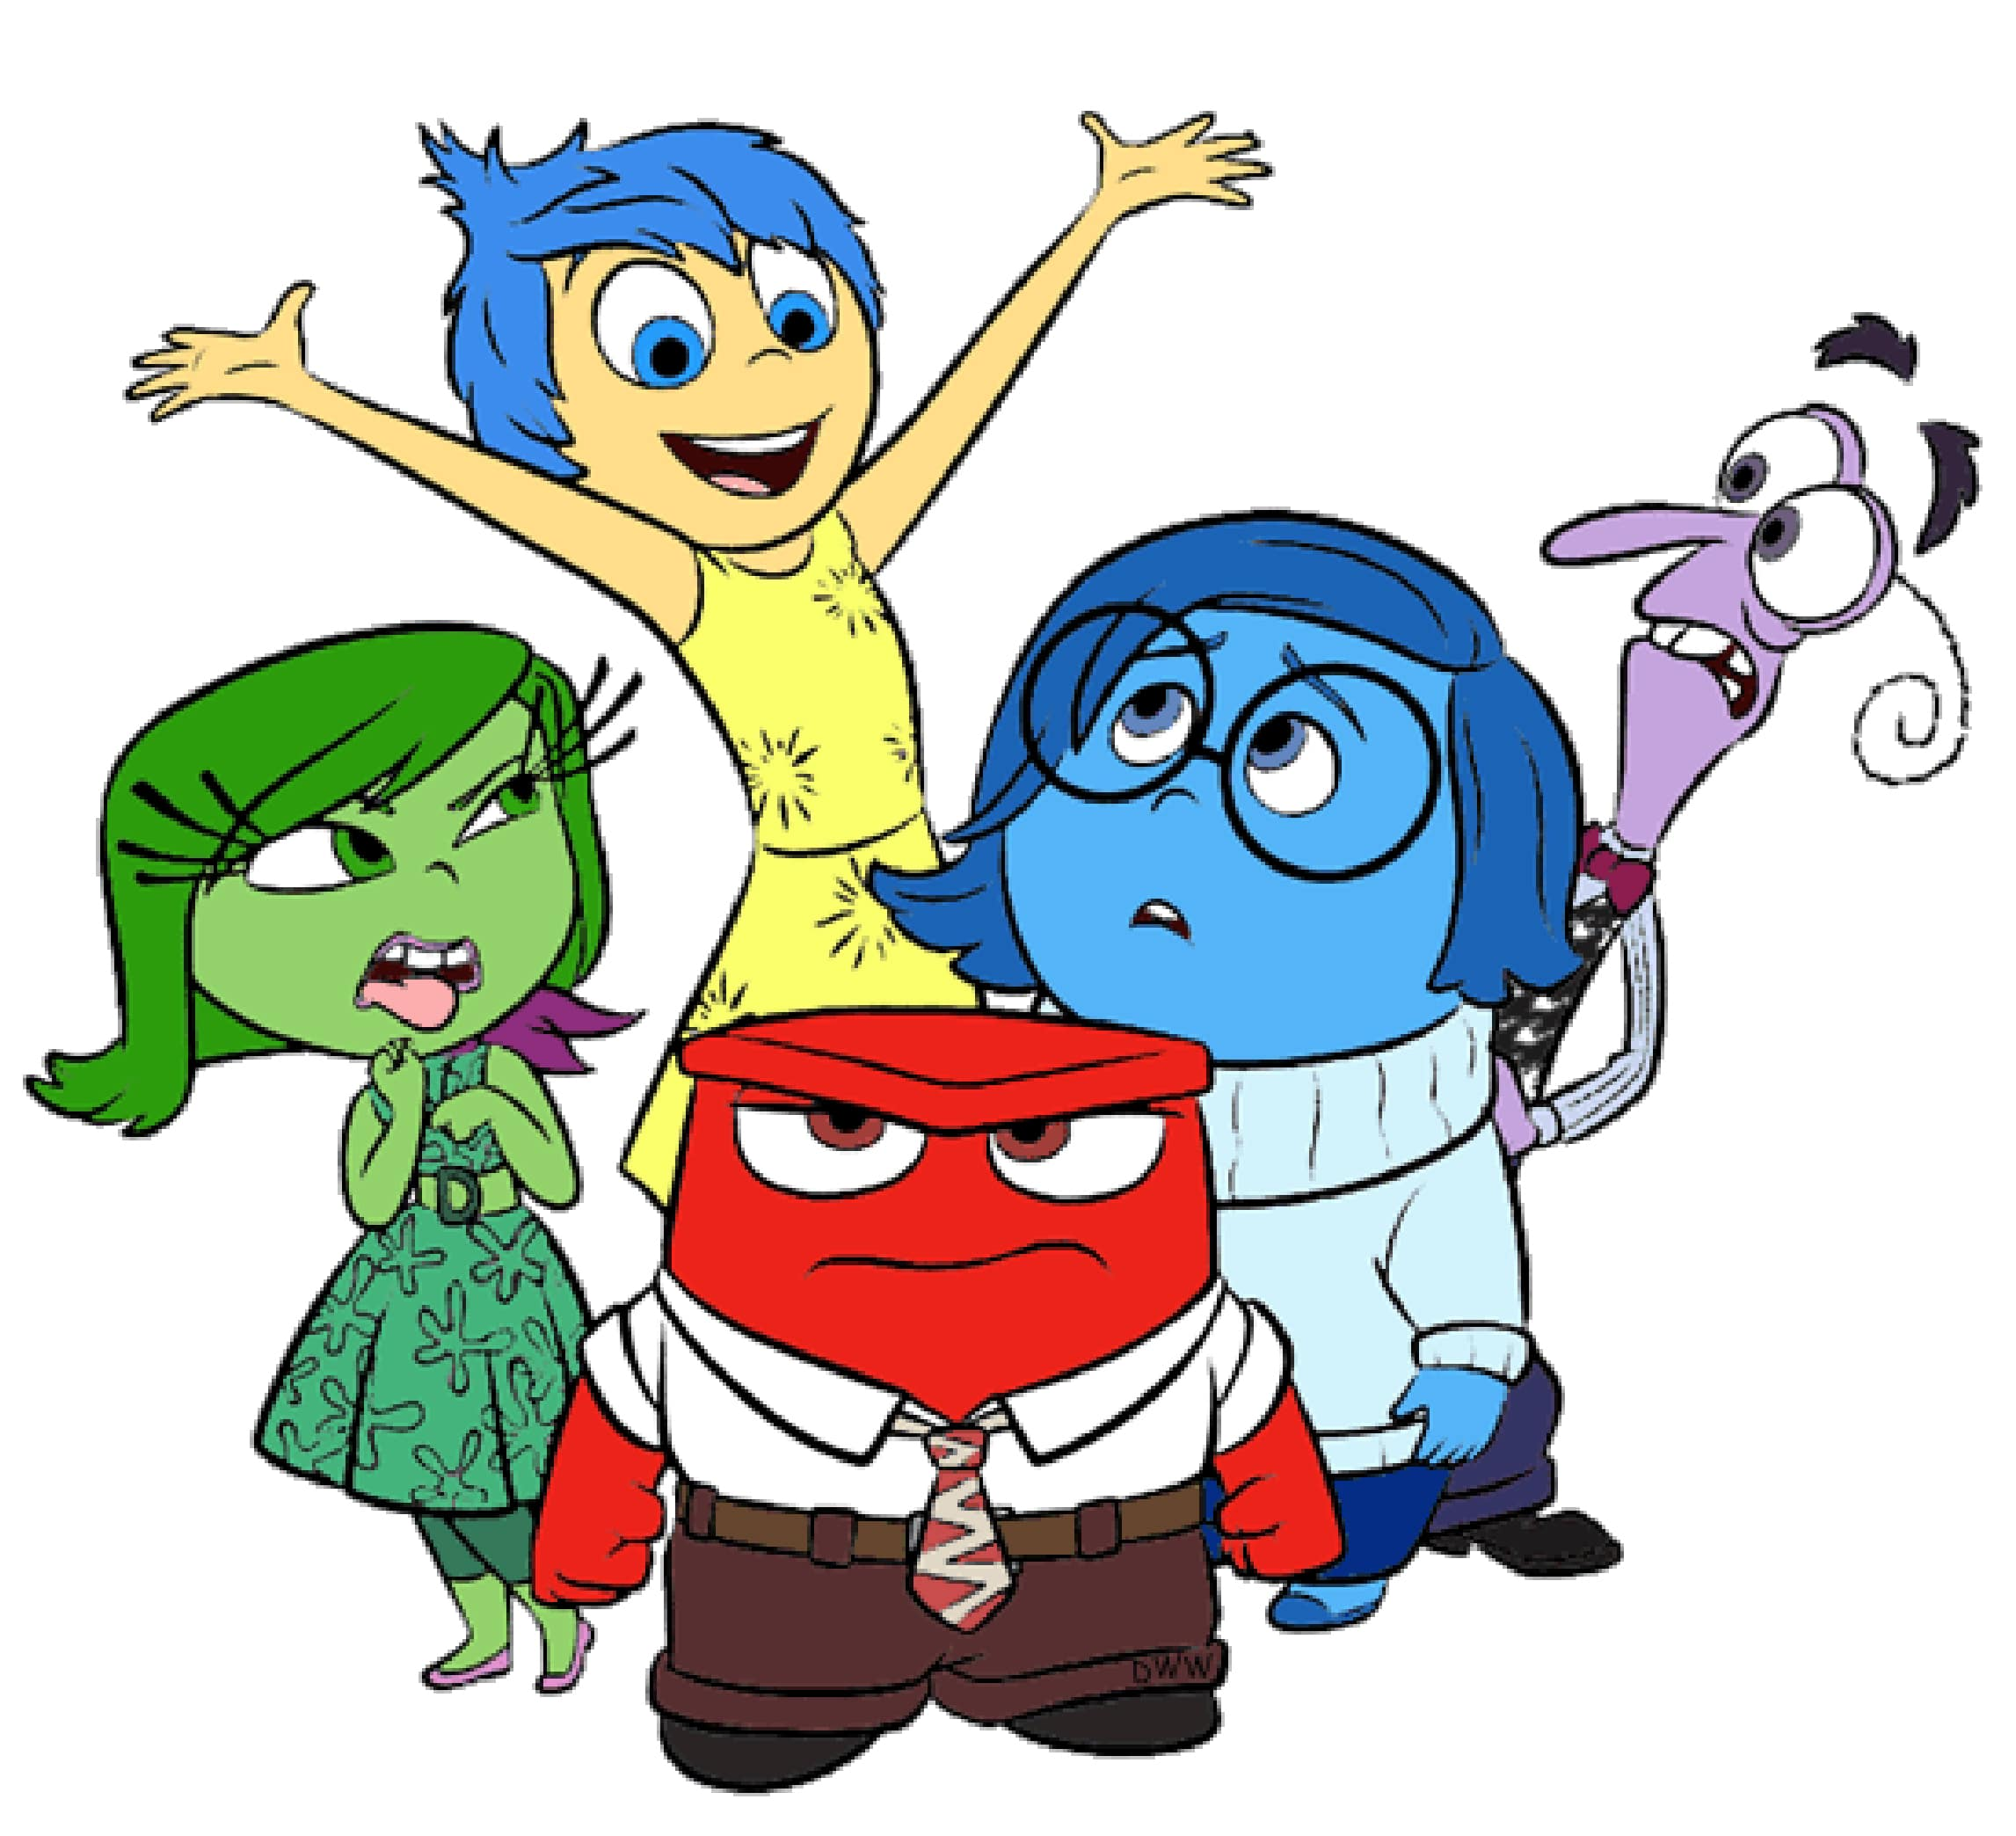 Character Images from Inside Out Movie